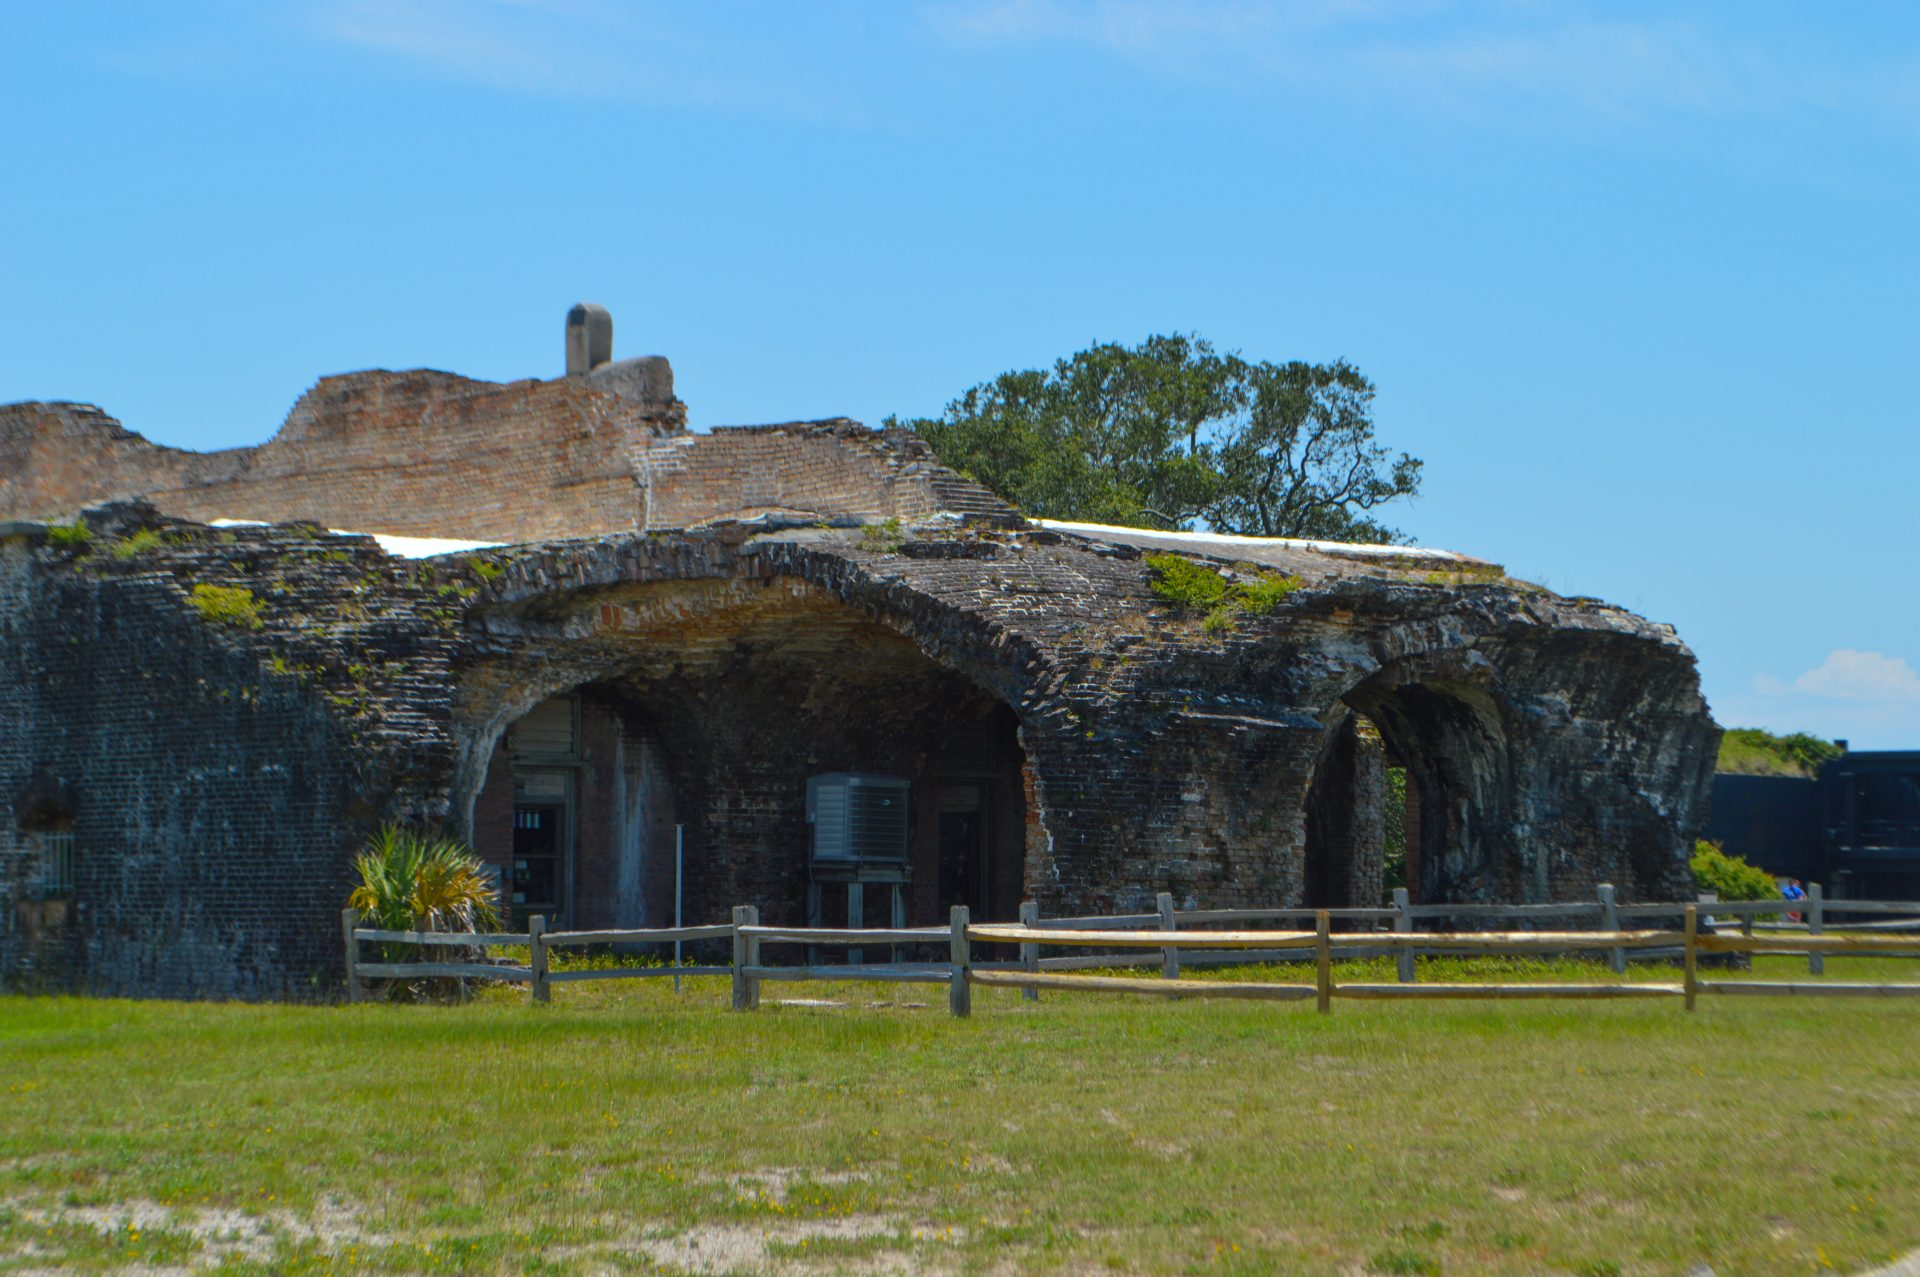 Fort Pickens Military fortification Pensacola